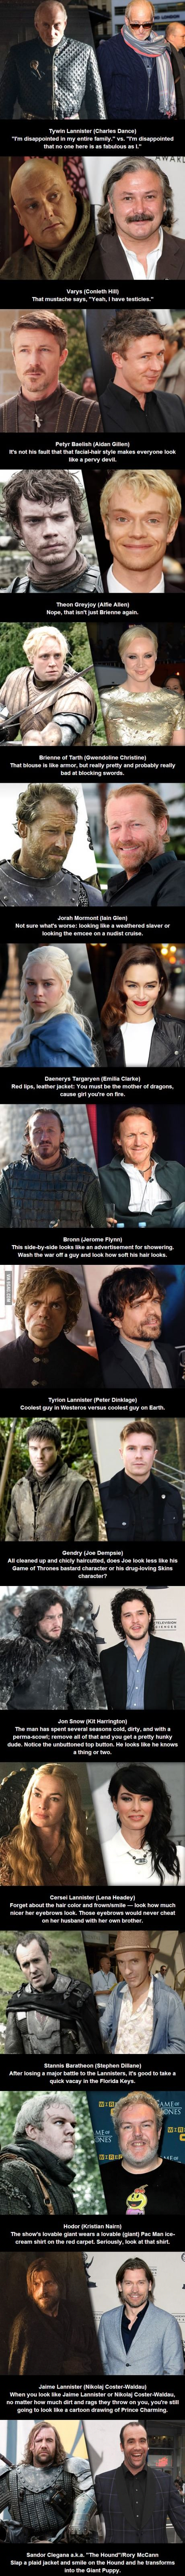 GoT: Actors vs Characters